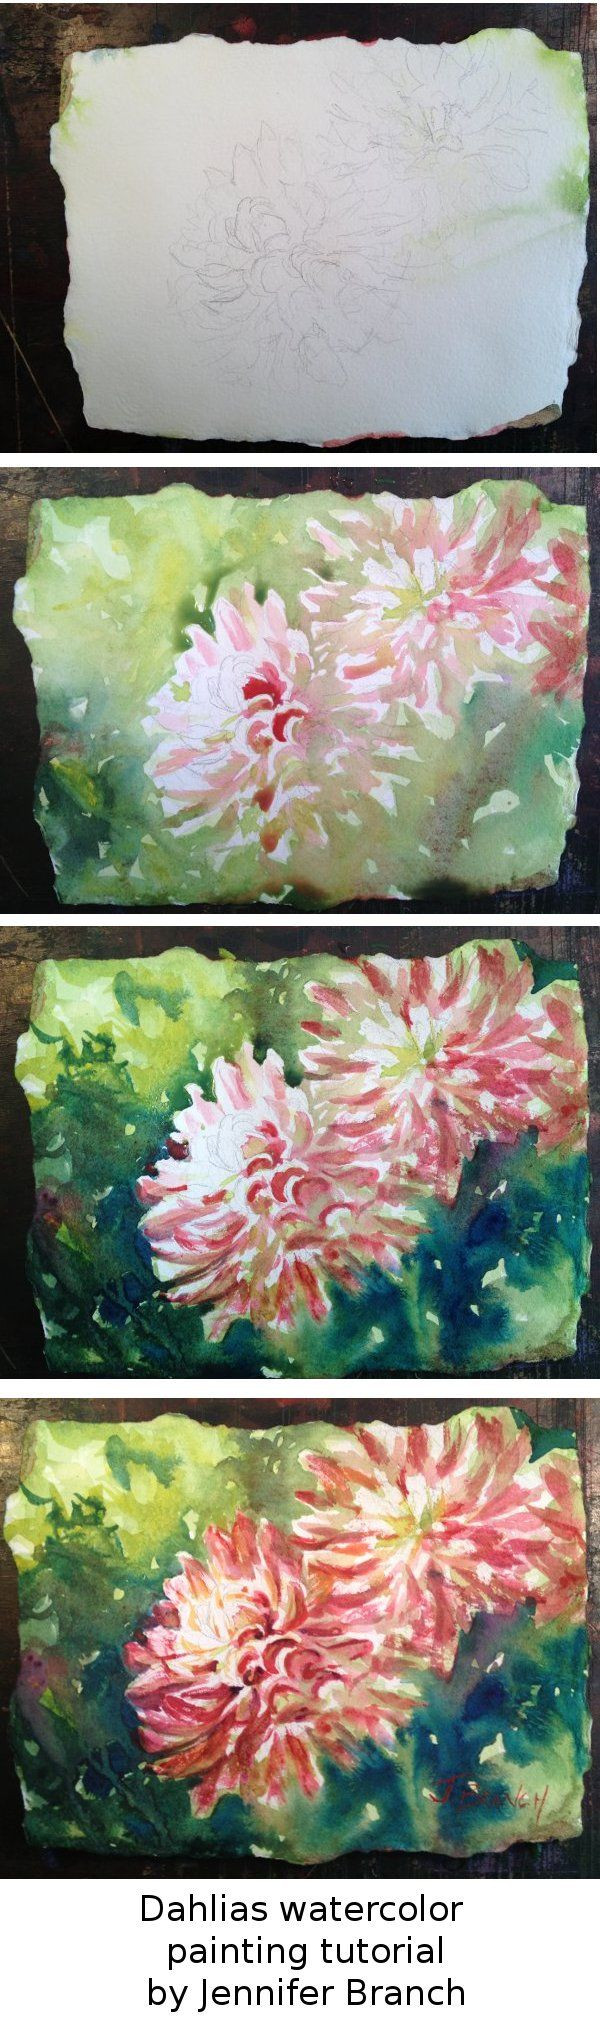 I love having just enough time for a little sketch. Here's a quick watercolor tutorial on how to paint dahlia flowers. Jennifer Branch.